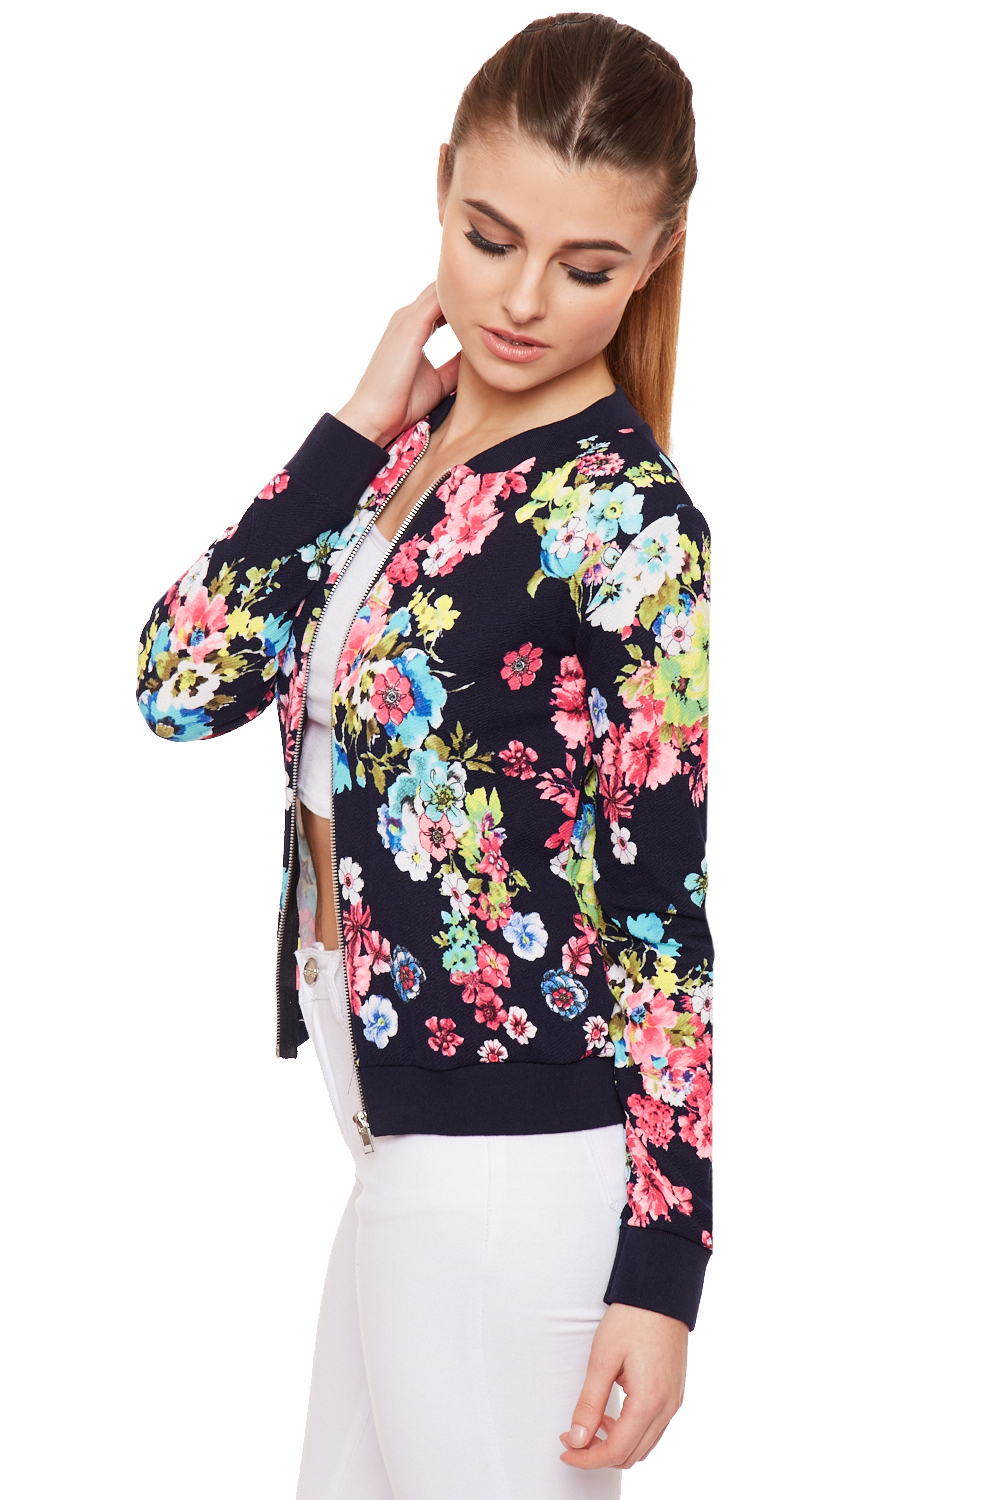 Our women's cheap floral jackets can bring a lot of heart and humor to a casual outfit. All our floral jackets are top quality but at low price.